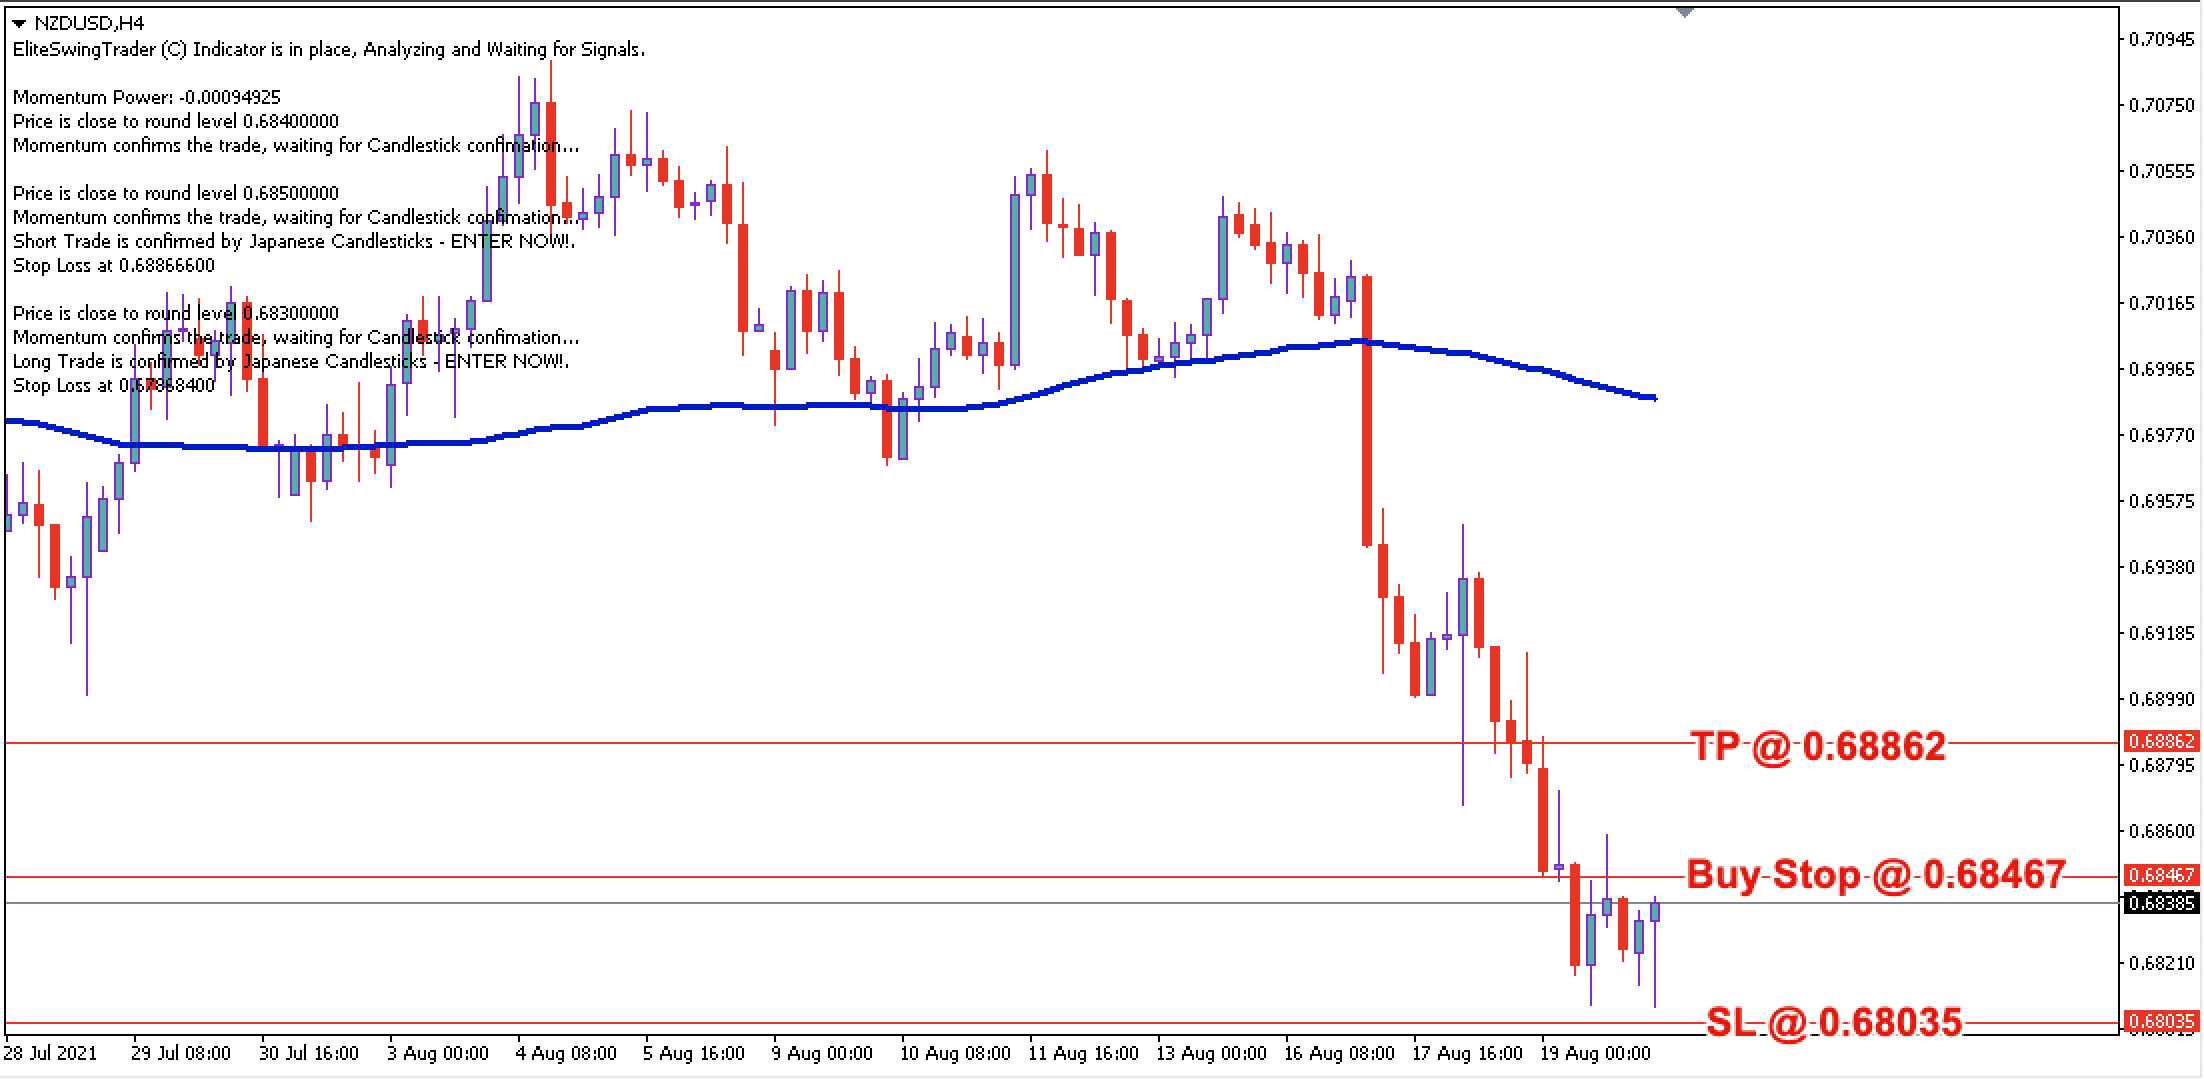 NZD/USD Daily Price Forecast – 20th August 2021